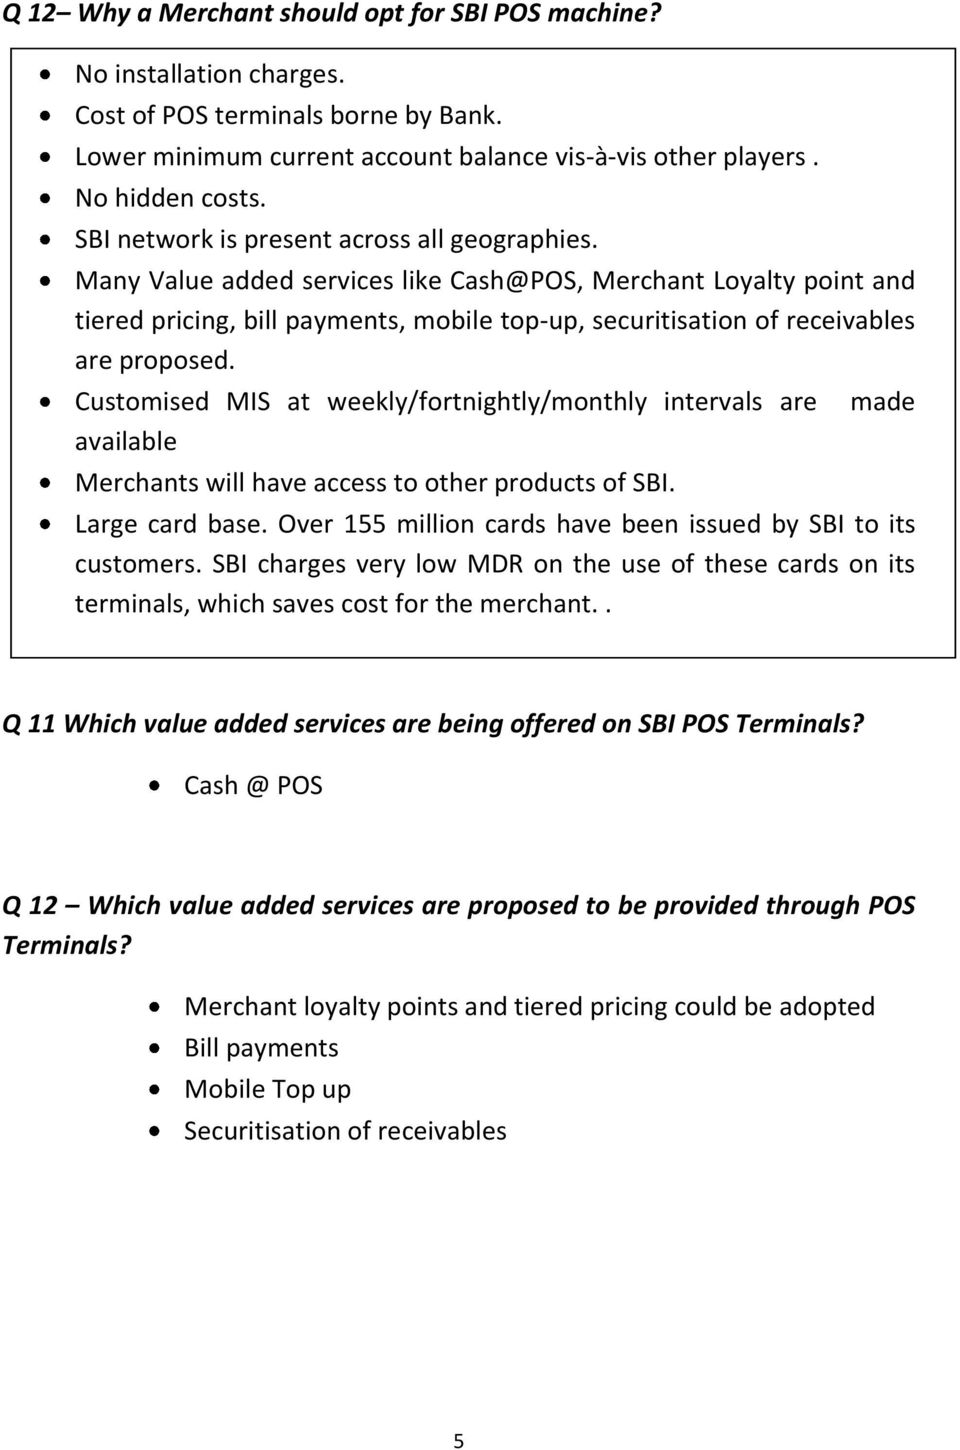 Many Value added services like Cash@POS, Merchant Loyalty point and tiered pricing, bill payments, mobile top-up, securitisation of receivables are proposed.